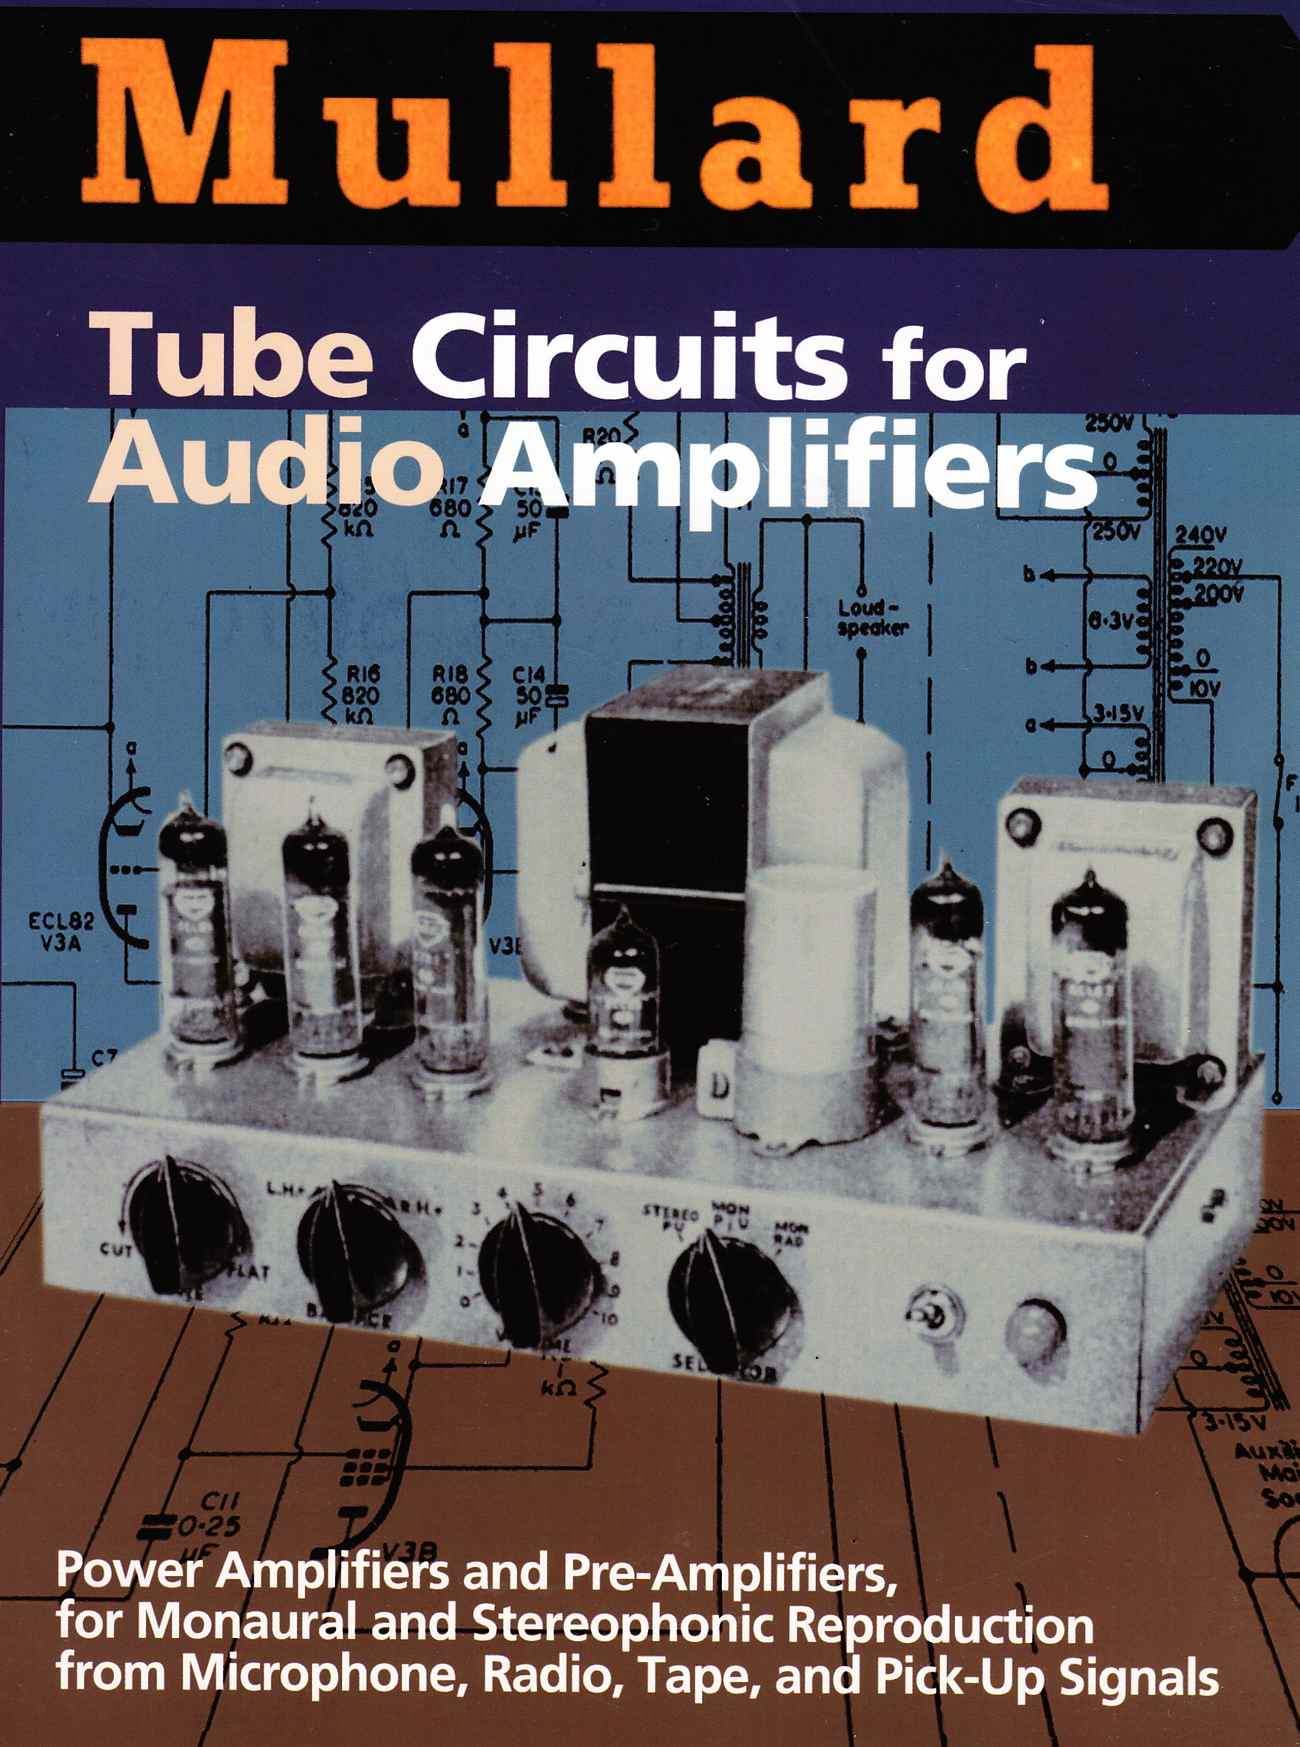 Audio Circuits Book Not Lossing Wiring Diagram 50 Watt Transistor Amplifier Circuit Mullard 520 Power C 1956 Preservation Sound Rh Preservationsound Com Board 12vdc Watts